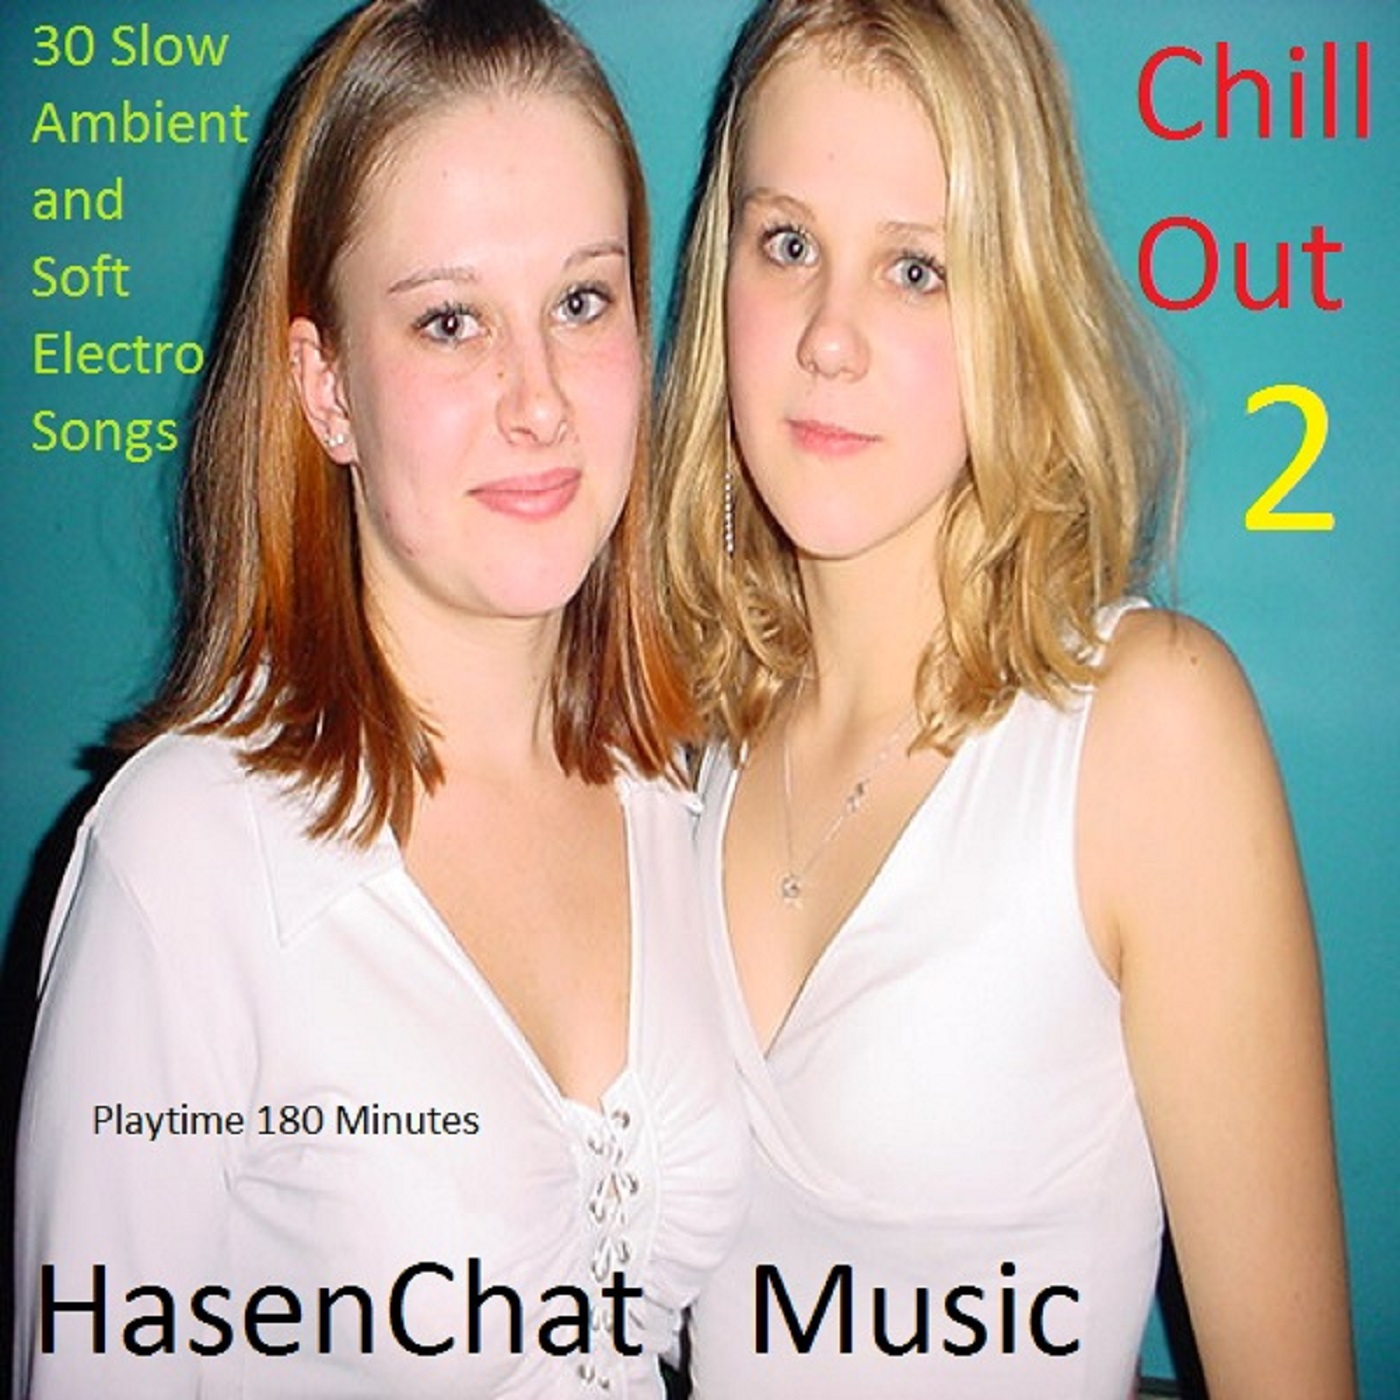 1400x1400 Chill Out 2 Cover